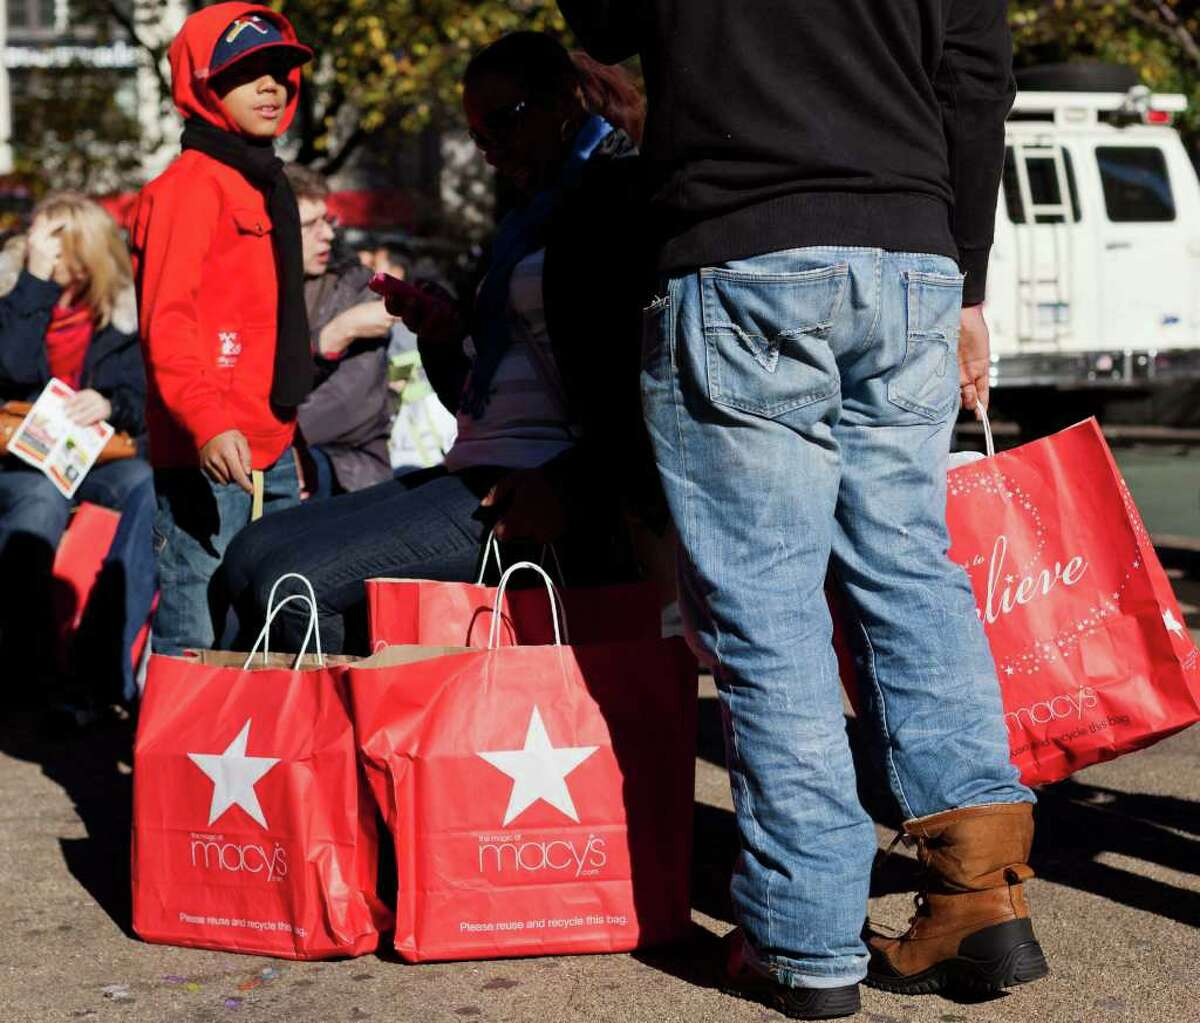 File - In this Nov. 26, 2011 file photo, consumers put down their bags for a rest in Herald Square, in New York. The U.S. economy is ending 2011 on a roll. Growth in the fourth quarter likely accelerated to the fastest pace since mid-2010, and the job market appears to be strengthening.